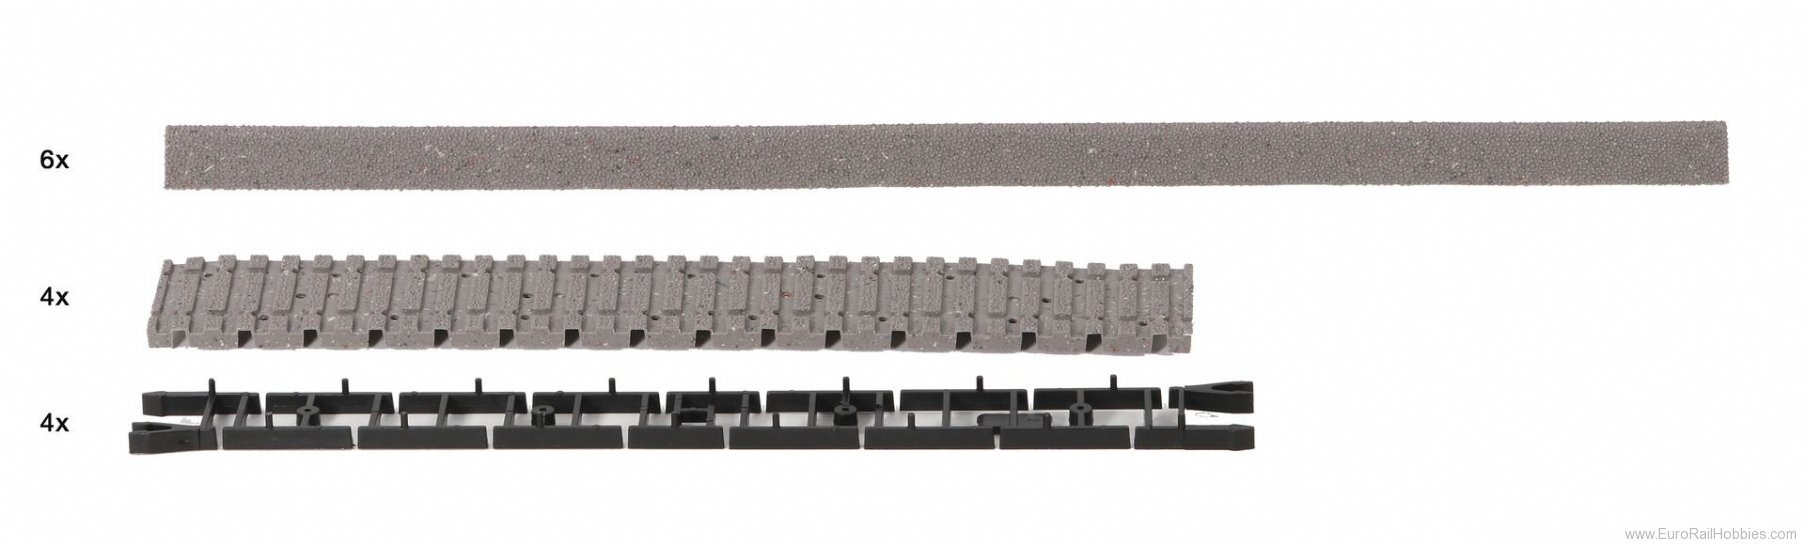 Roco 42660 Track bed  (RocoLine with Track Bed)